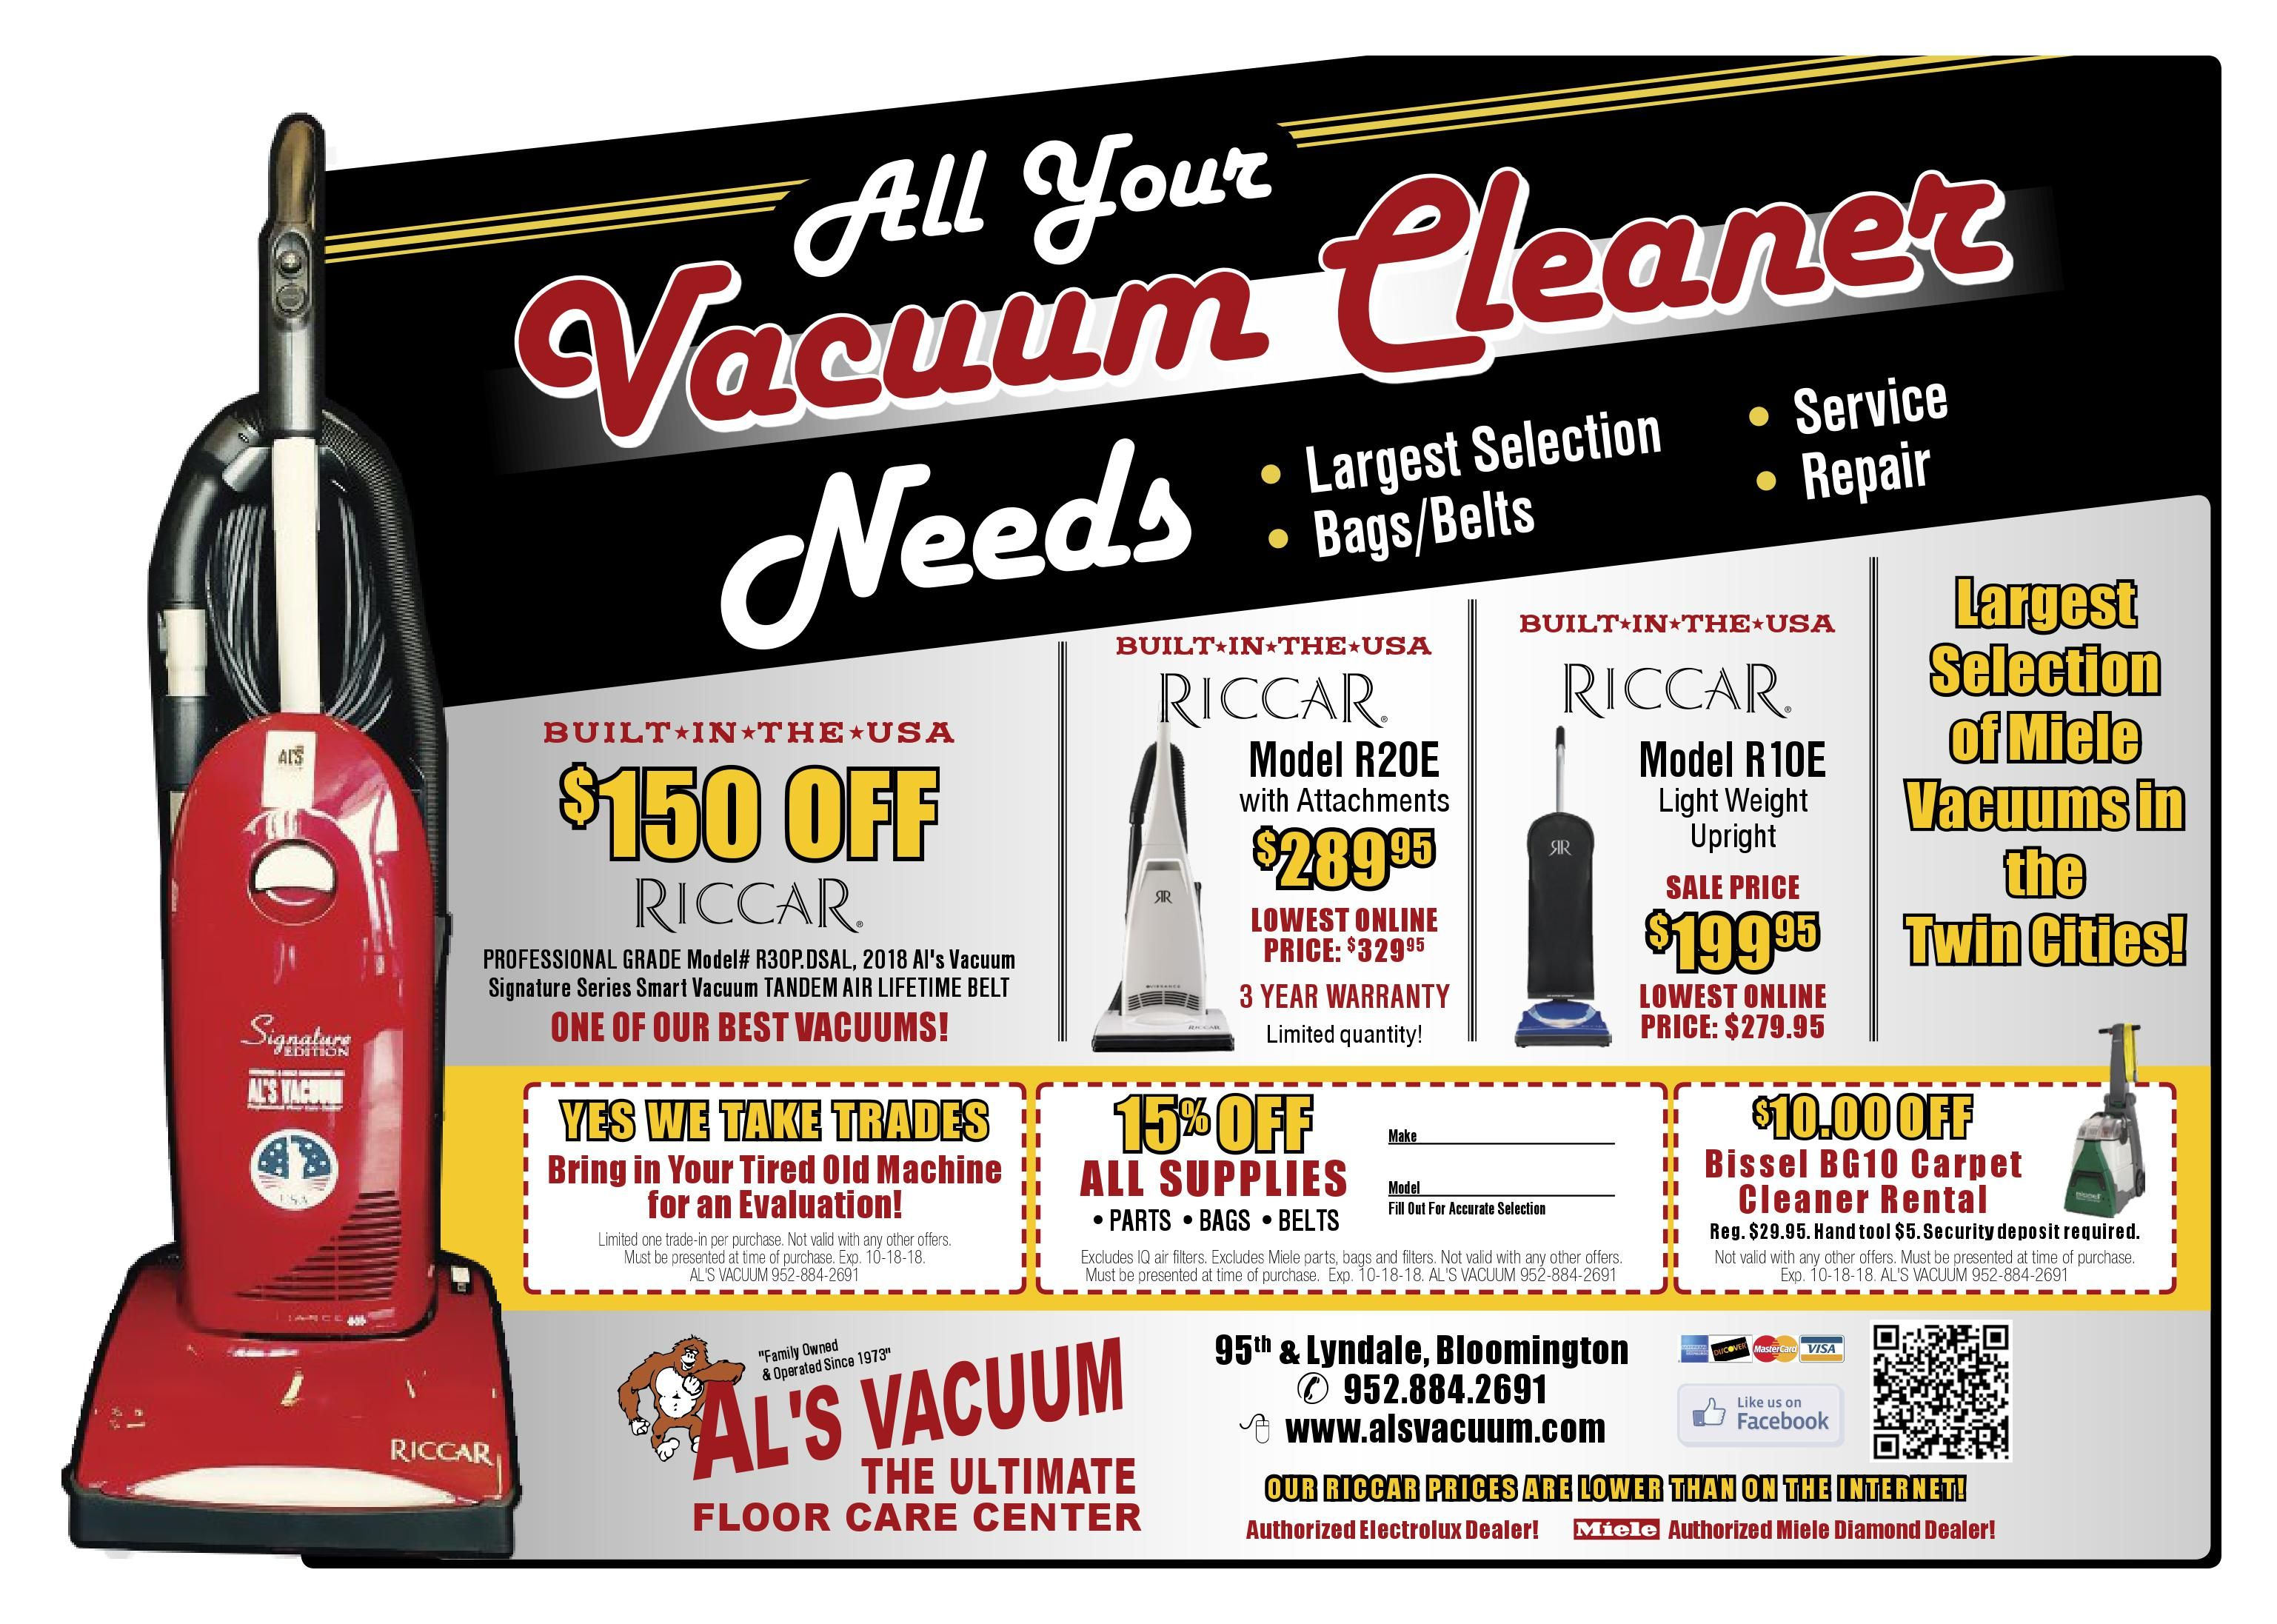 Labor Day Sale At Al S Vacuum All Your Vacuum Cleaner Needs Largest Selection Bags Belts Service Repair Sale On Now Thr Miele Vacuum Riccar Vacuum Vacuums